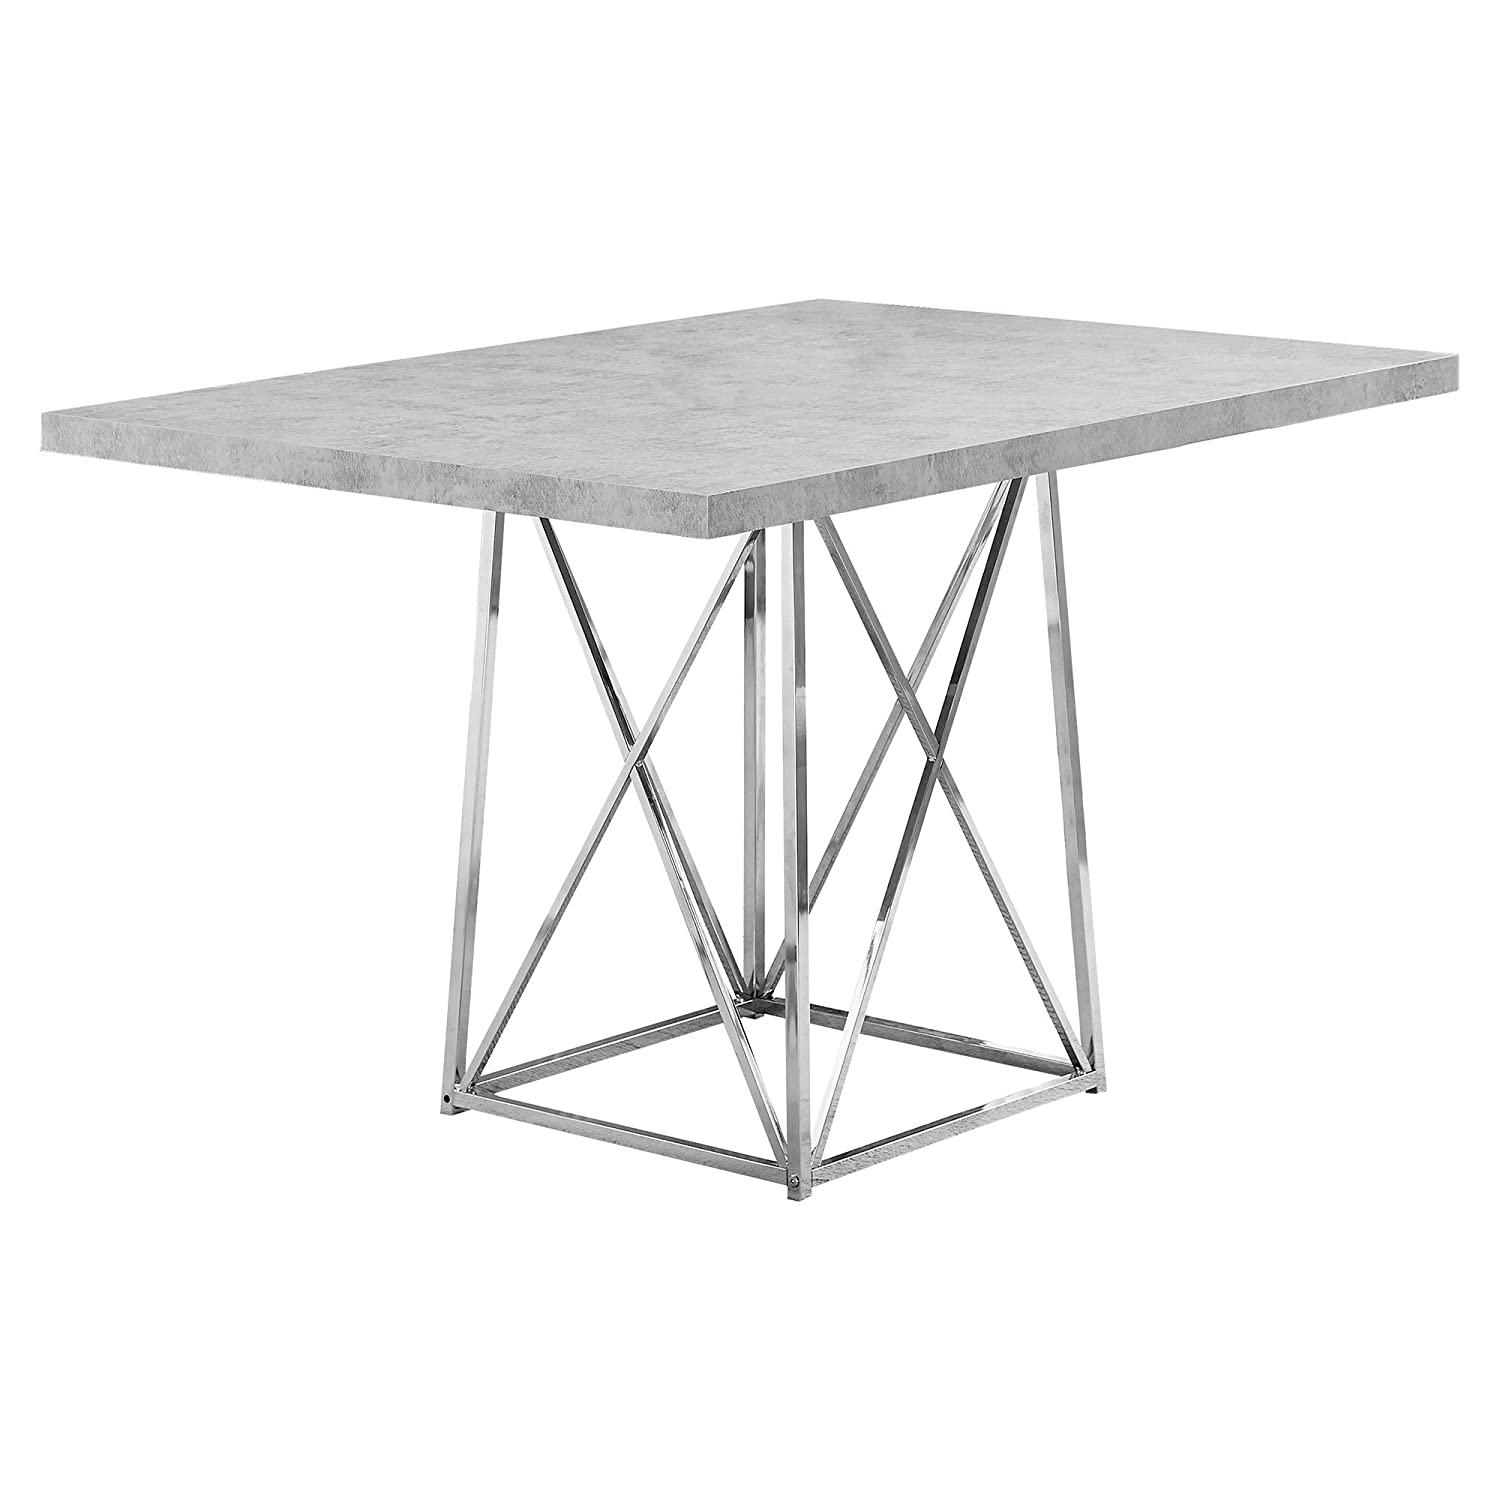 Monarch Specialties I Dining Table Metal Base, 36 x 48 , Grey Cement Chrome